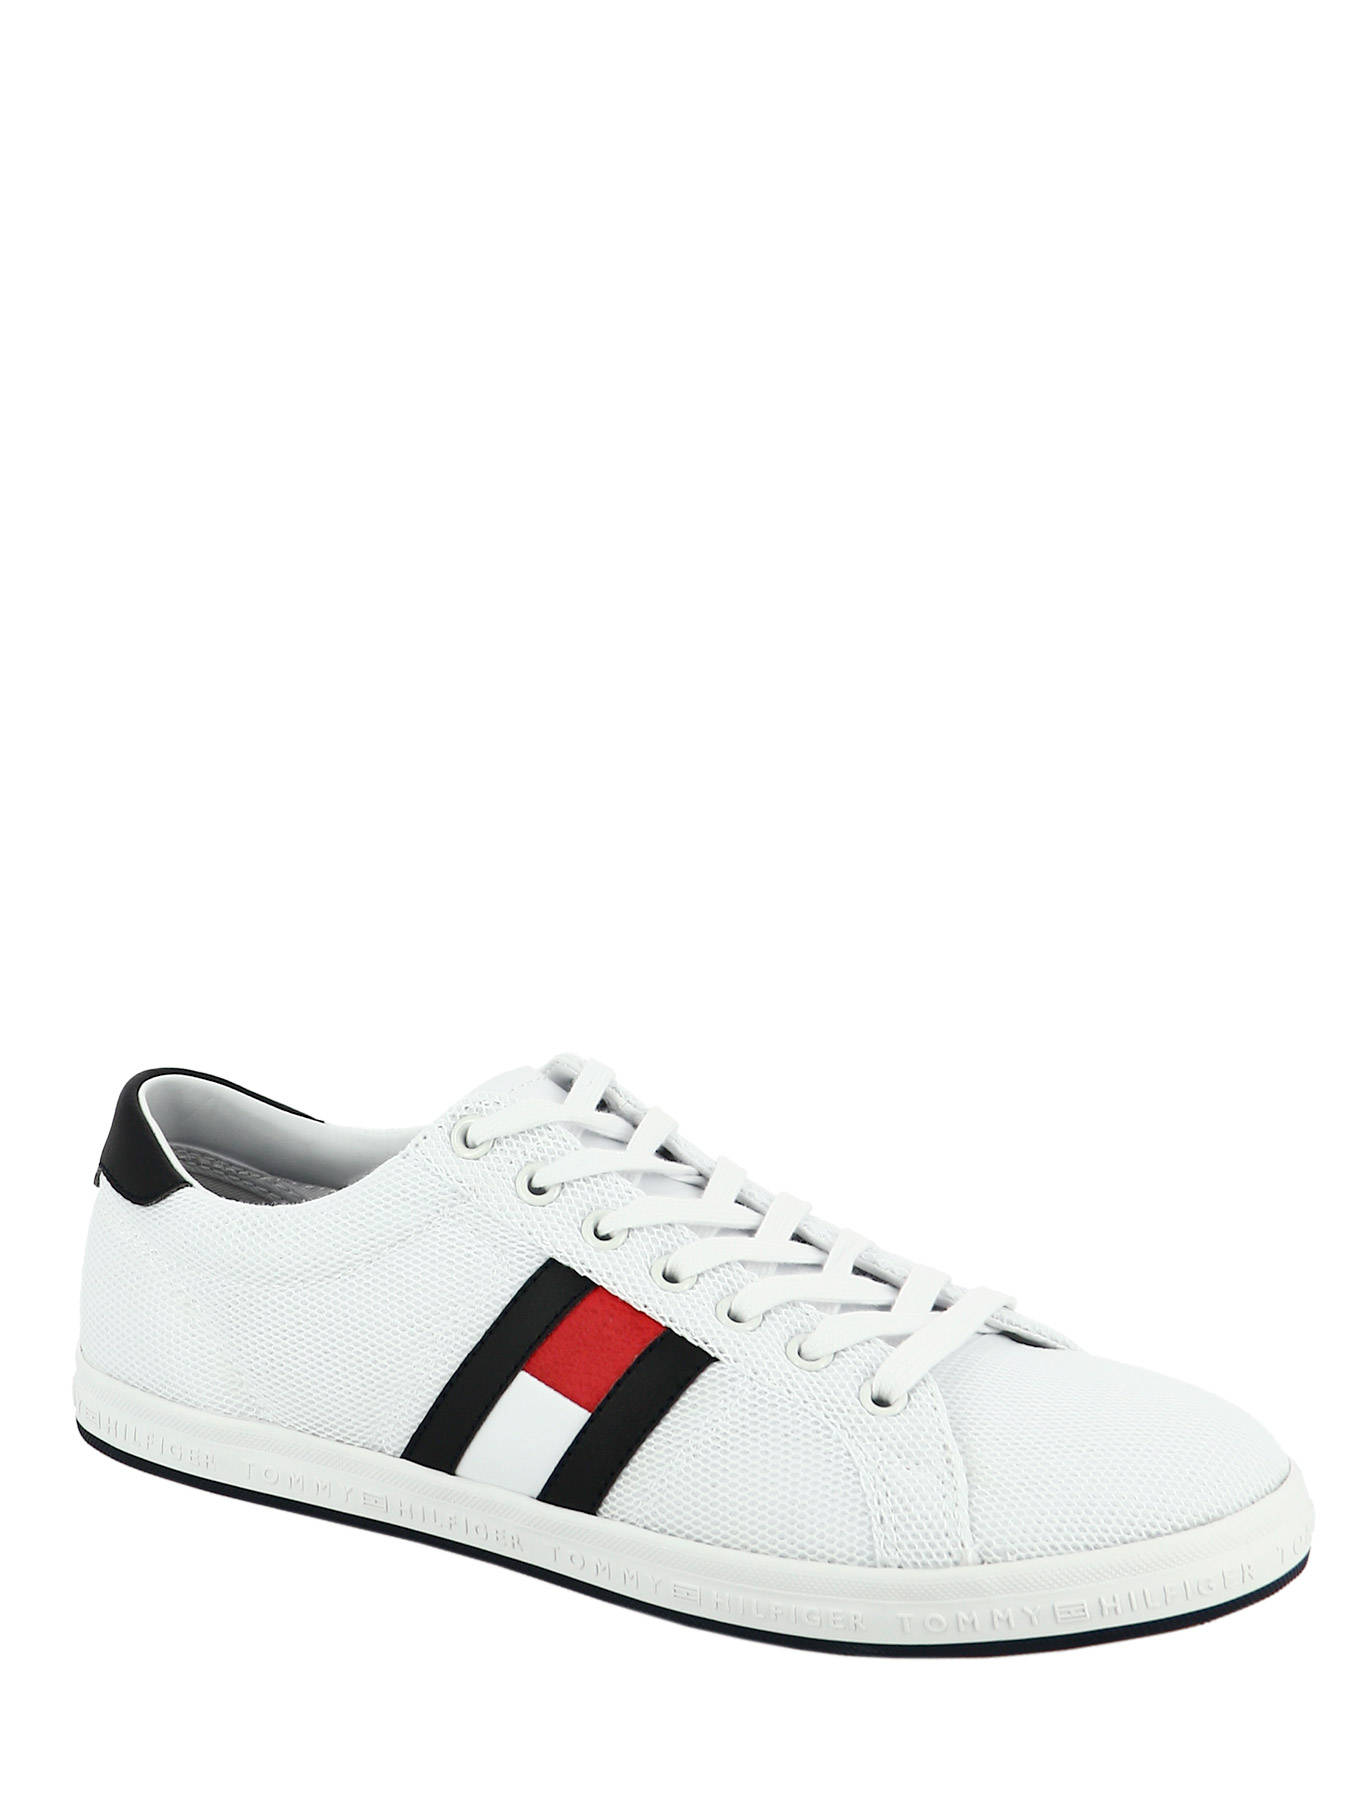 Essential flag detail TOMMY HILFIGER